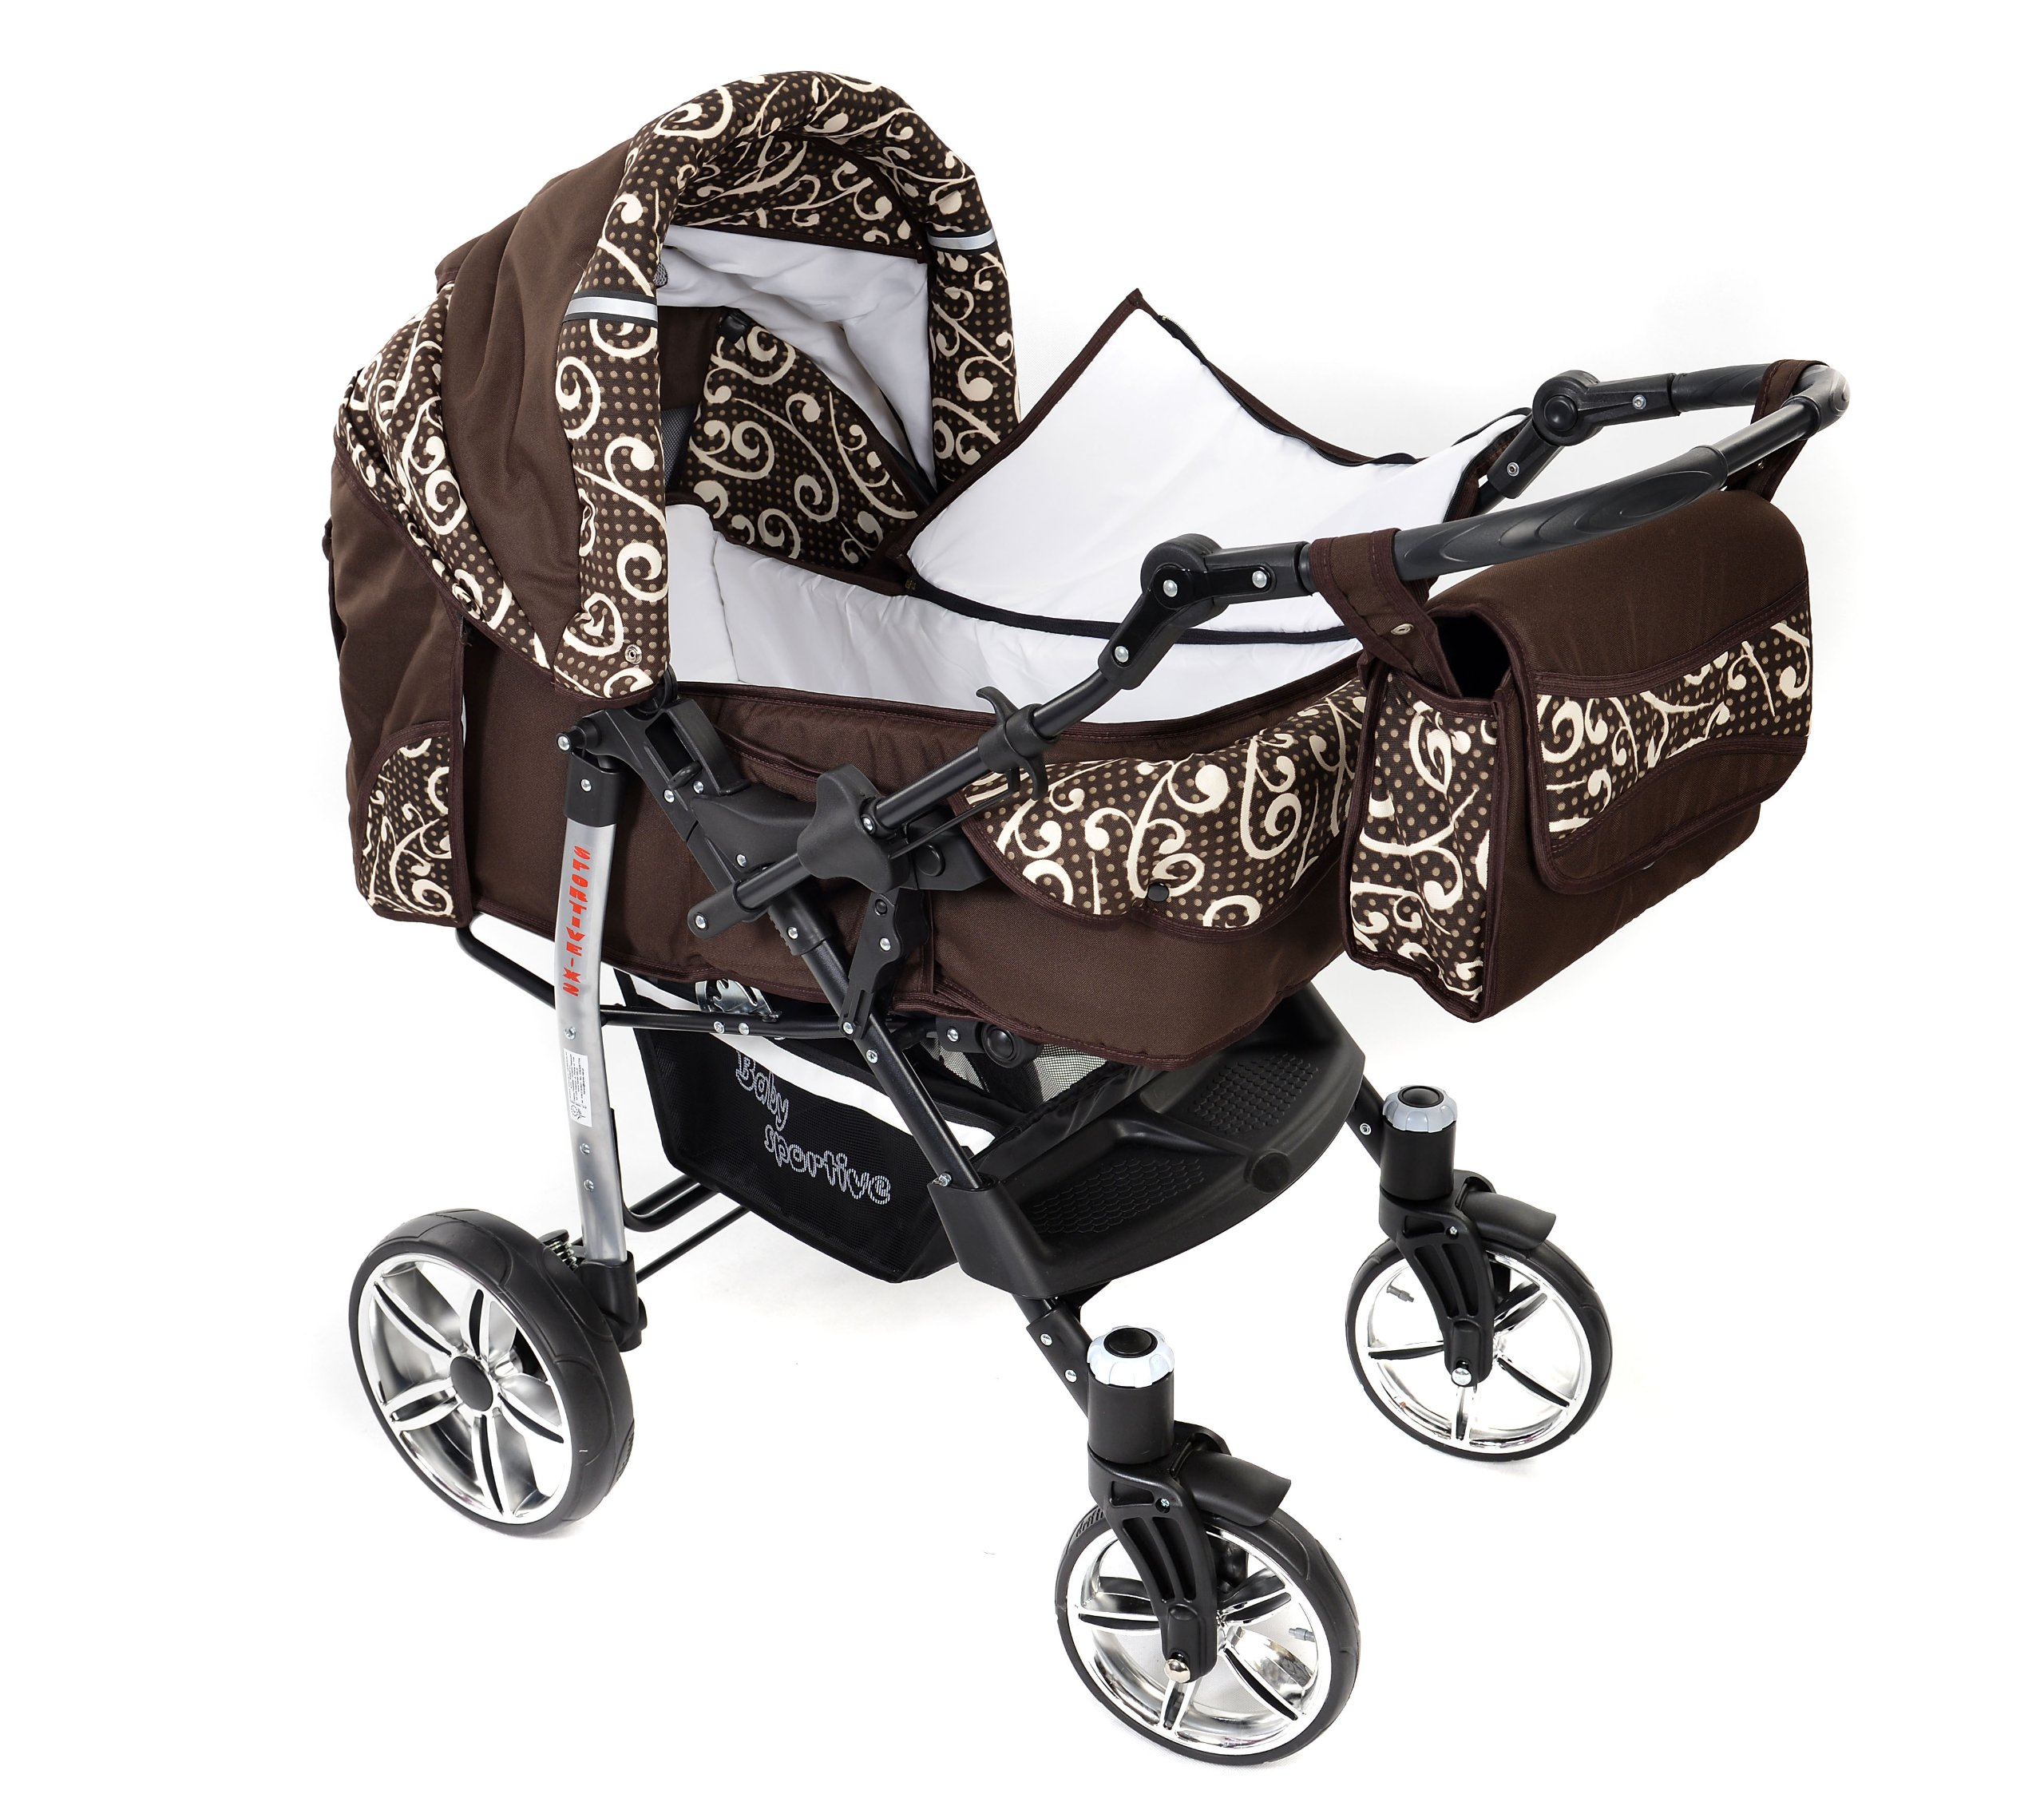 Sportive X2, 3-in-1 Travel System incl. Baby Pram with Swivel Wheels, Car Seat, Pushchair & Accessories (3-in-1 Travel System, Brown & Wawy Lines)  3 in 1 Travel System All in One Set - Pram, Car Carrier Seat and Sport Buggy + Accessories: carrier bag, rain protection, mosquito net, changing mat, removable bottle holder and removable tray for your child's bits and pieces Suitable from birth, Easy Quick Folding System; Large storage basket; Turnable handle bar that allows to face or rear the drive direction; Quick release rear wheels for easy cleaning after muddy walks Front lockable 360o swivel wheels for manoeuvrability , Small sized when folded, fits into many small car trunks, Carry-cot with a removable hood, Reflective elements for better visibility 8